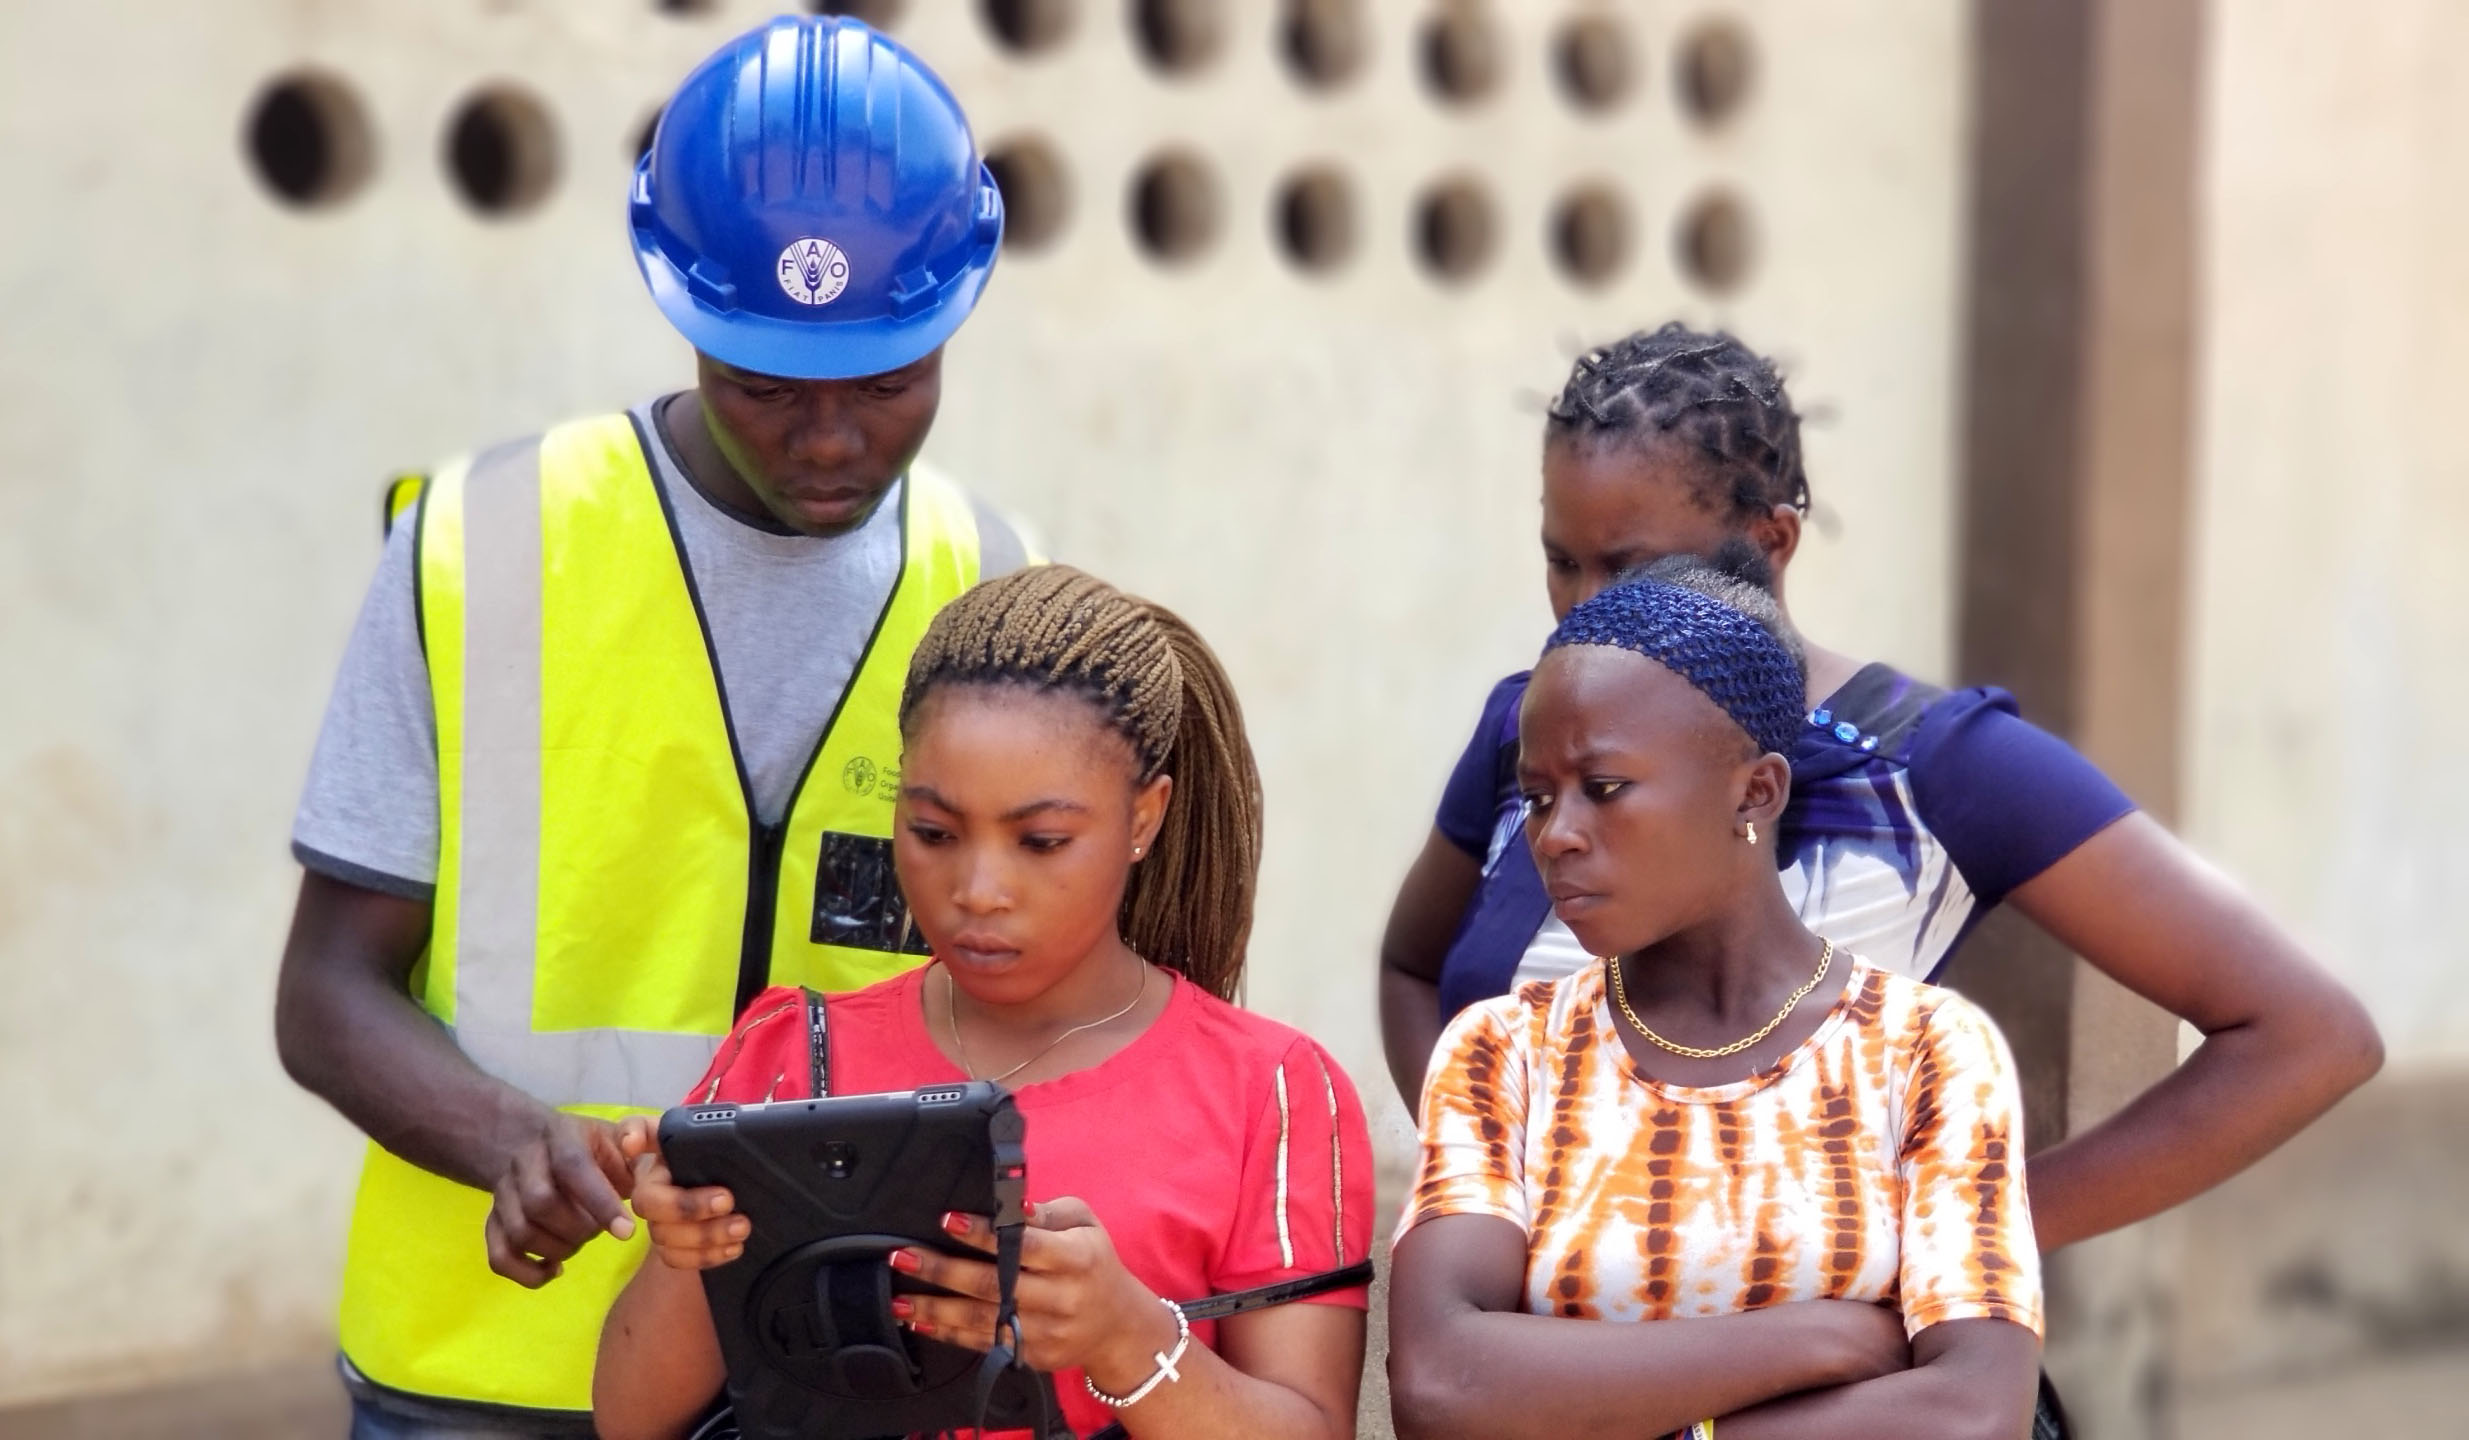 Young women are trained as para-surveyors to map family and village land boundaries. (Please note image was taken prior to COVID-19 social distancing measures were in place.